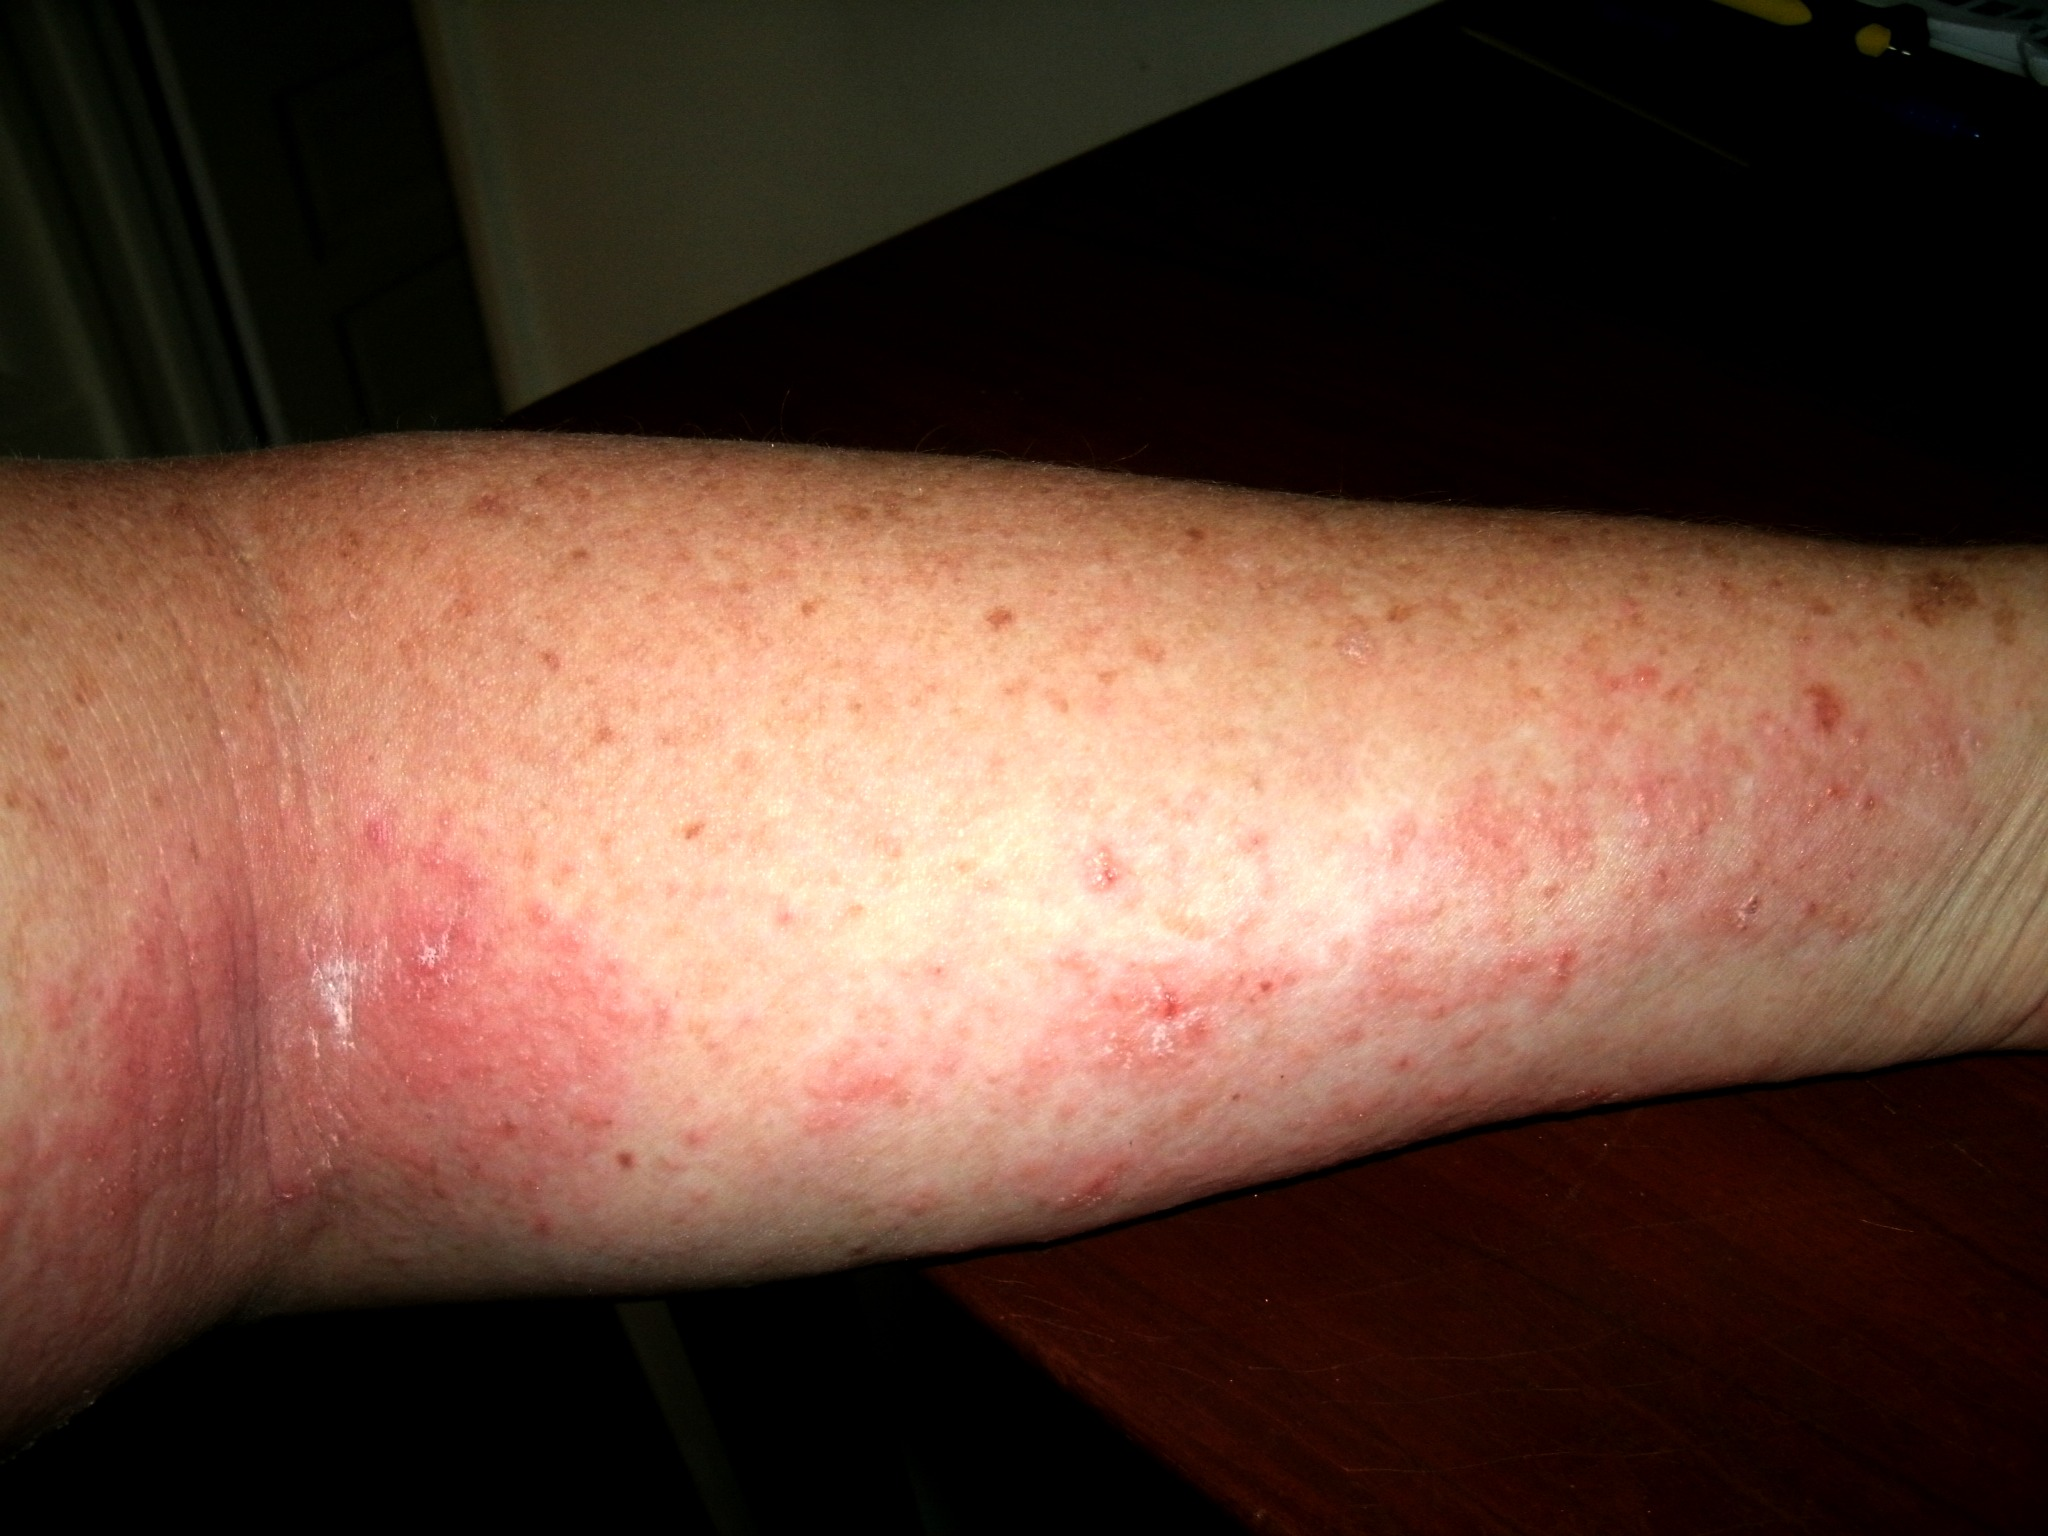 poison ivy on arm - pictures, photos